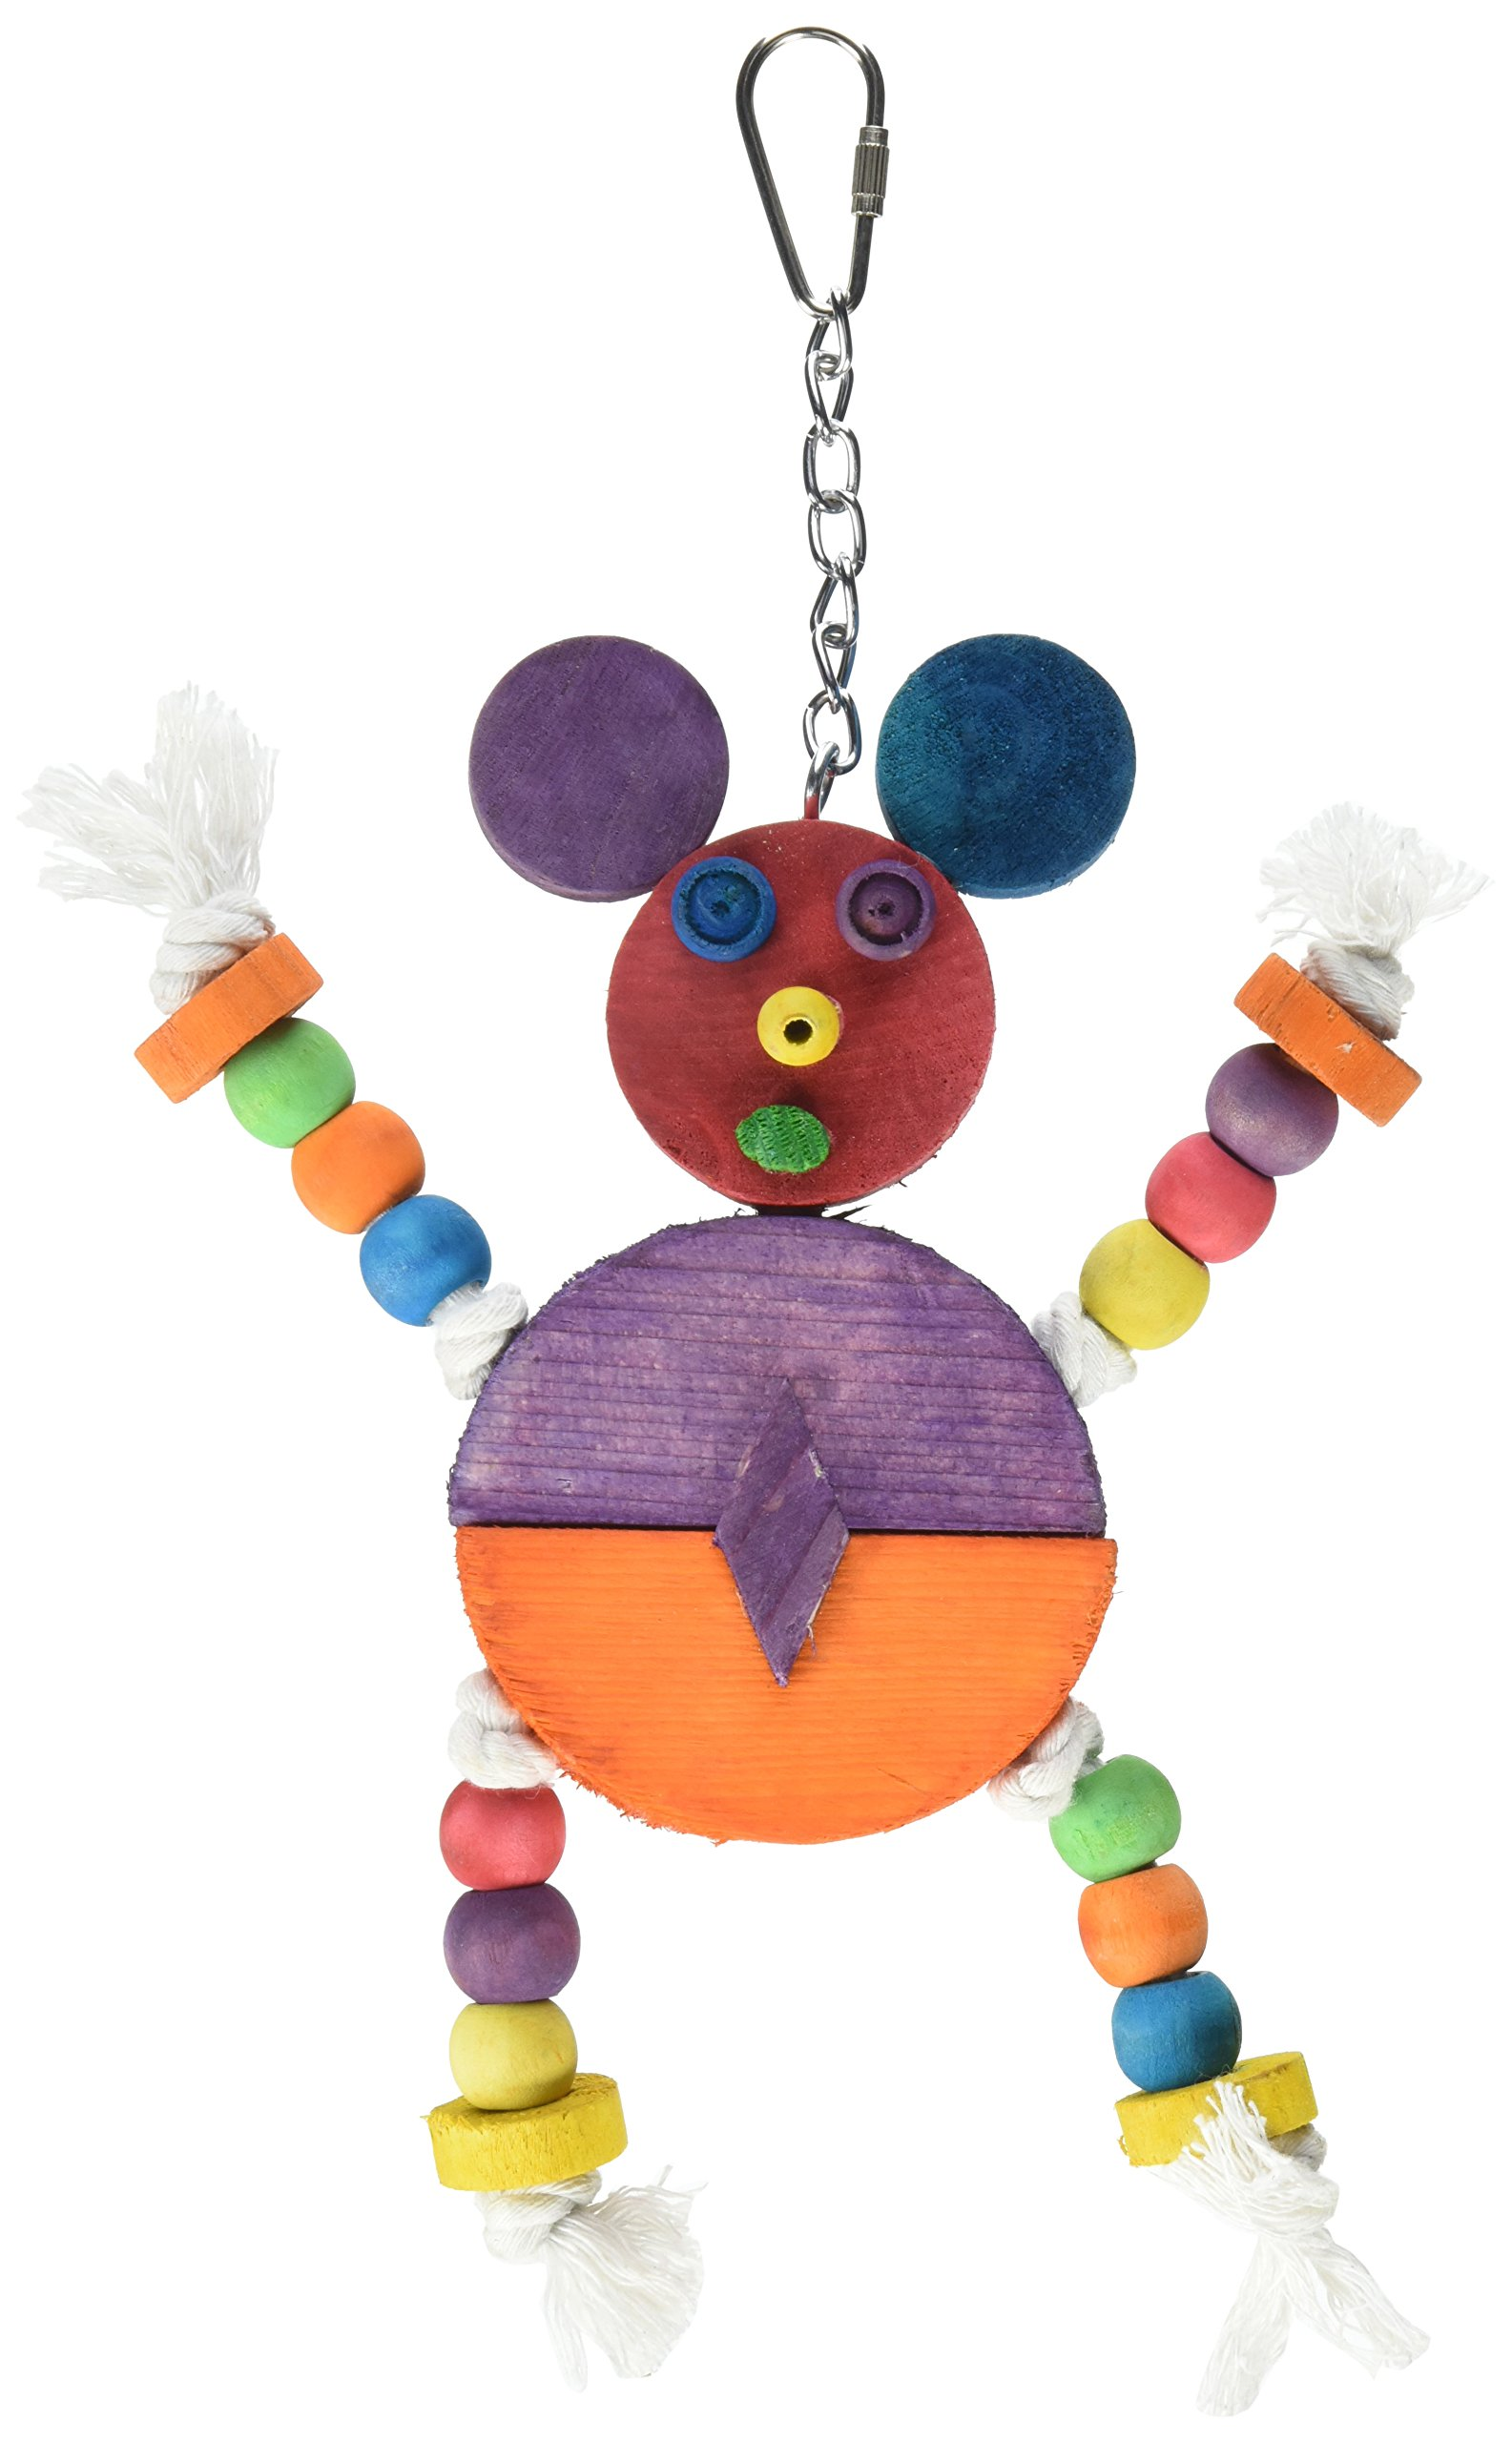 A&E CAGE COMPANY HB46352 Happy beaks Crazy Wooden Mouse Assorted Bird Toy, 9 by 11.8'' by A&E CAGE COMPANY (Image #1)